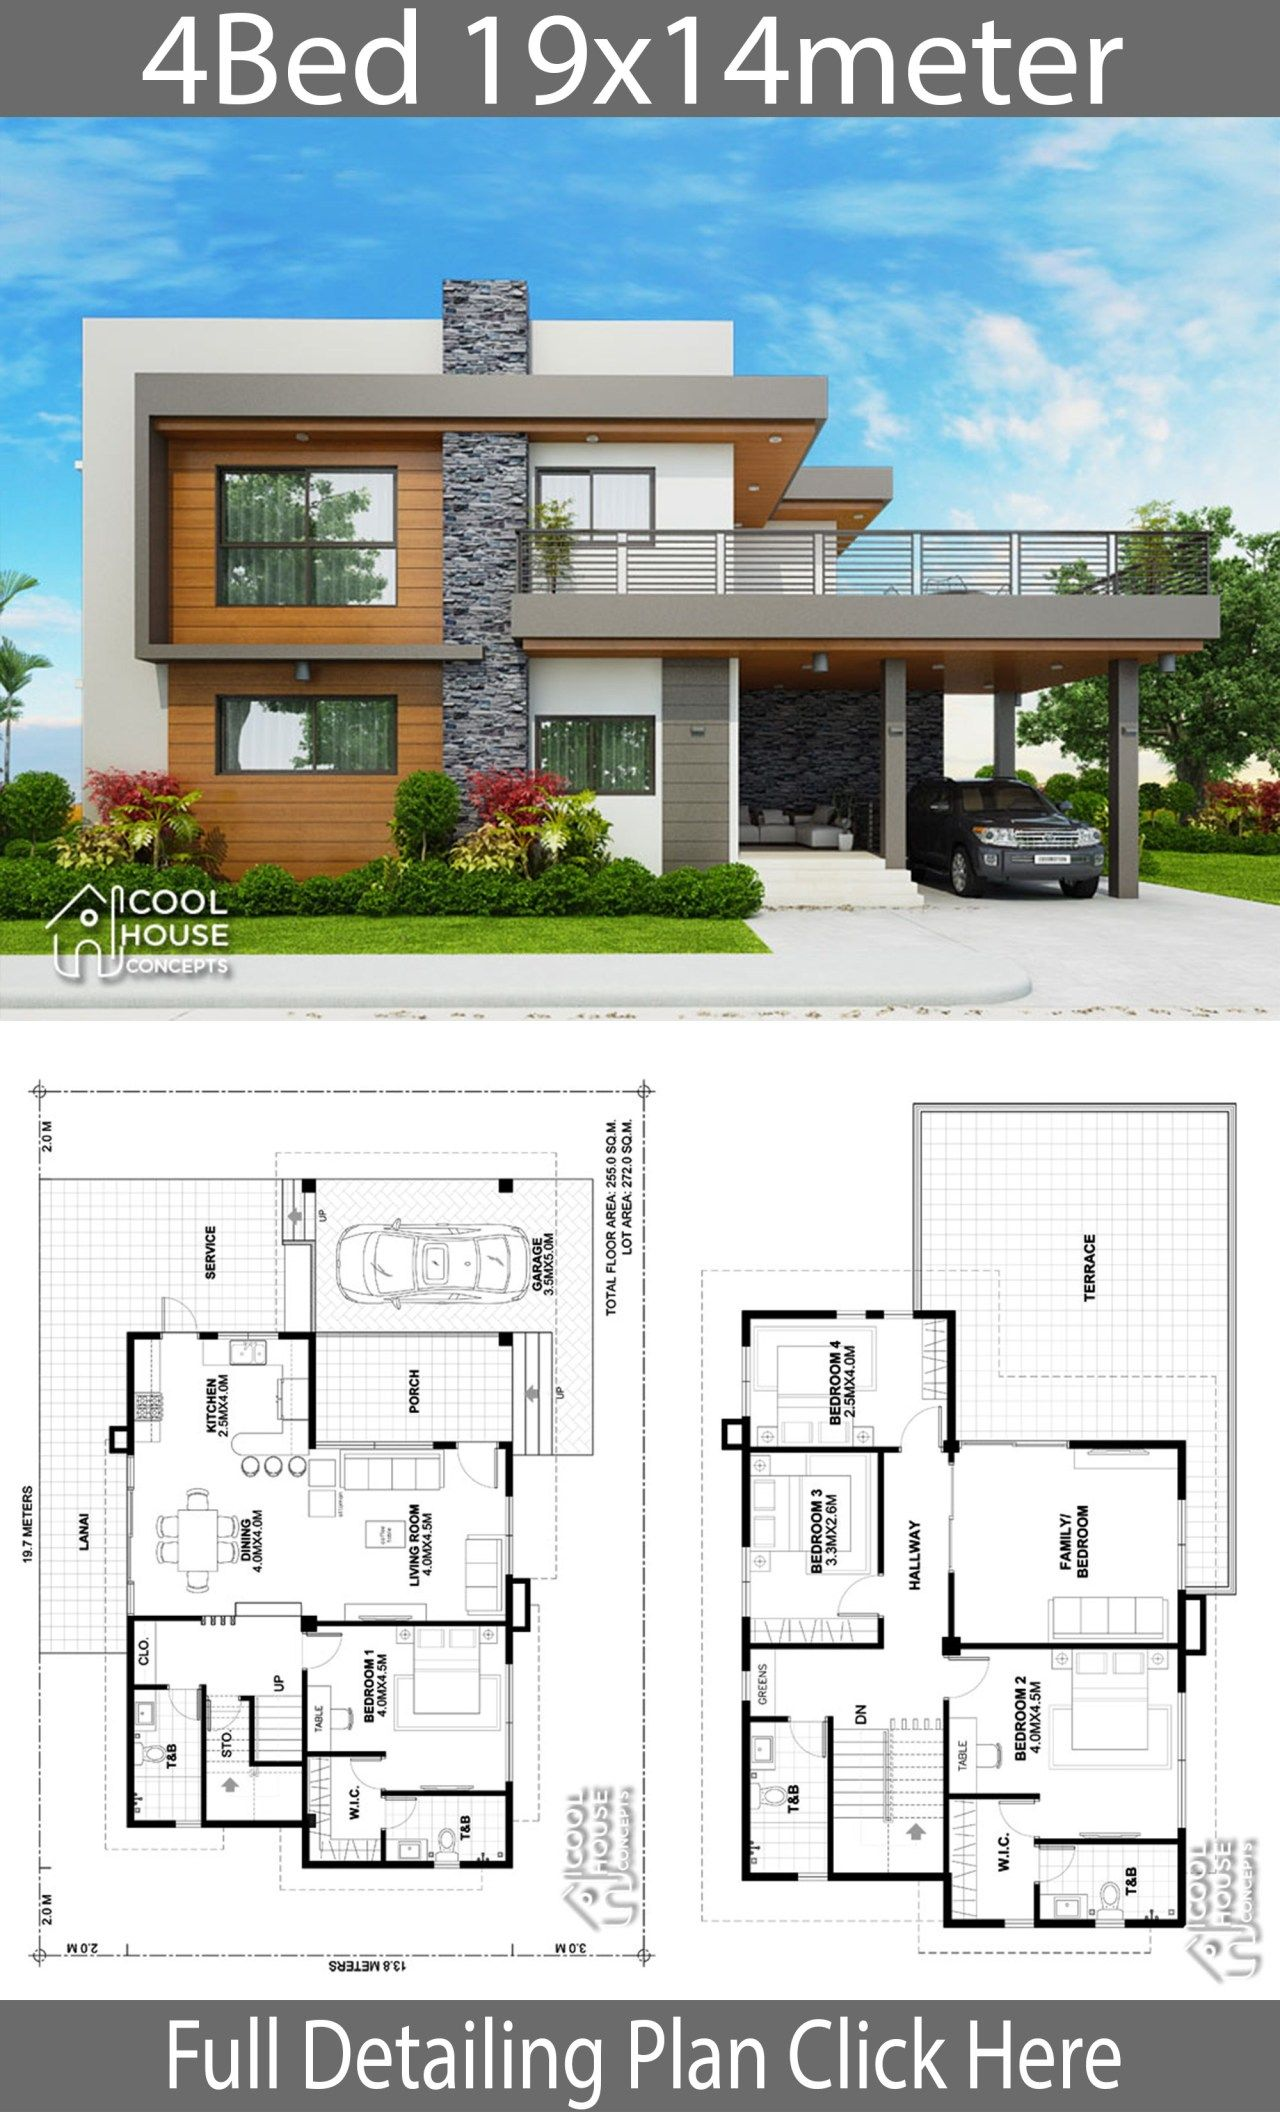 Home Design Plan 19x14m With 4 Bedrooms Home Ideas Duplex House Design House Plan Gallery Contemporary House Plans